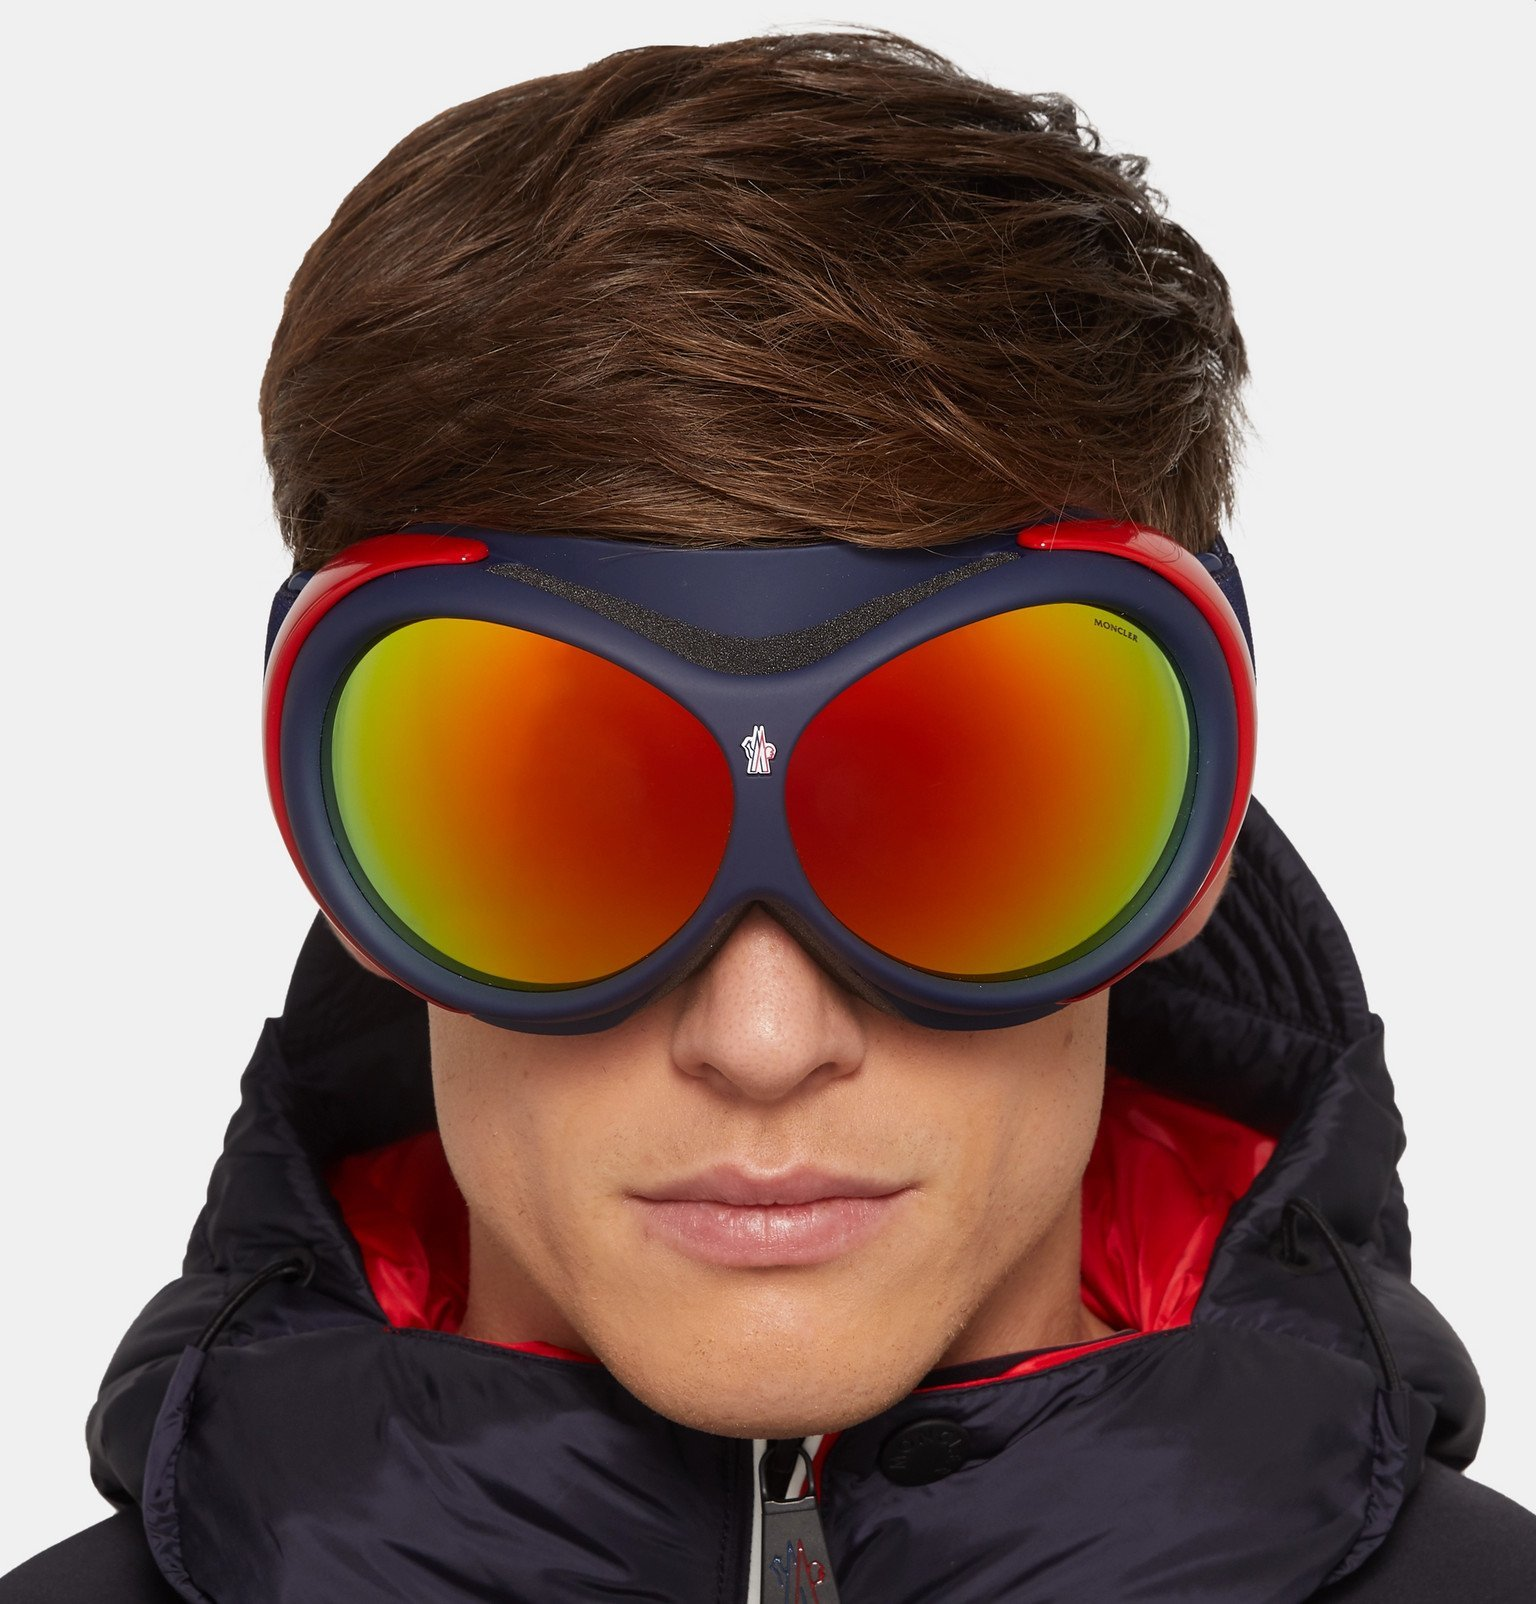 Moncler - Mirrored Ski Goggles - Black